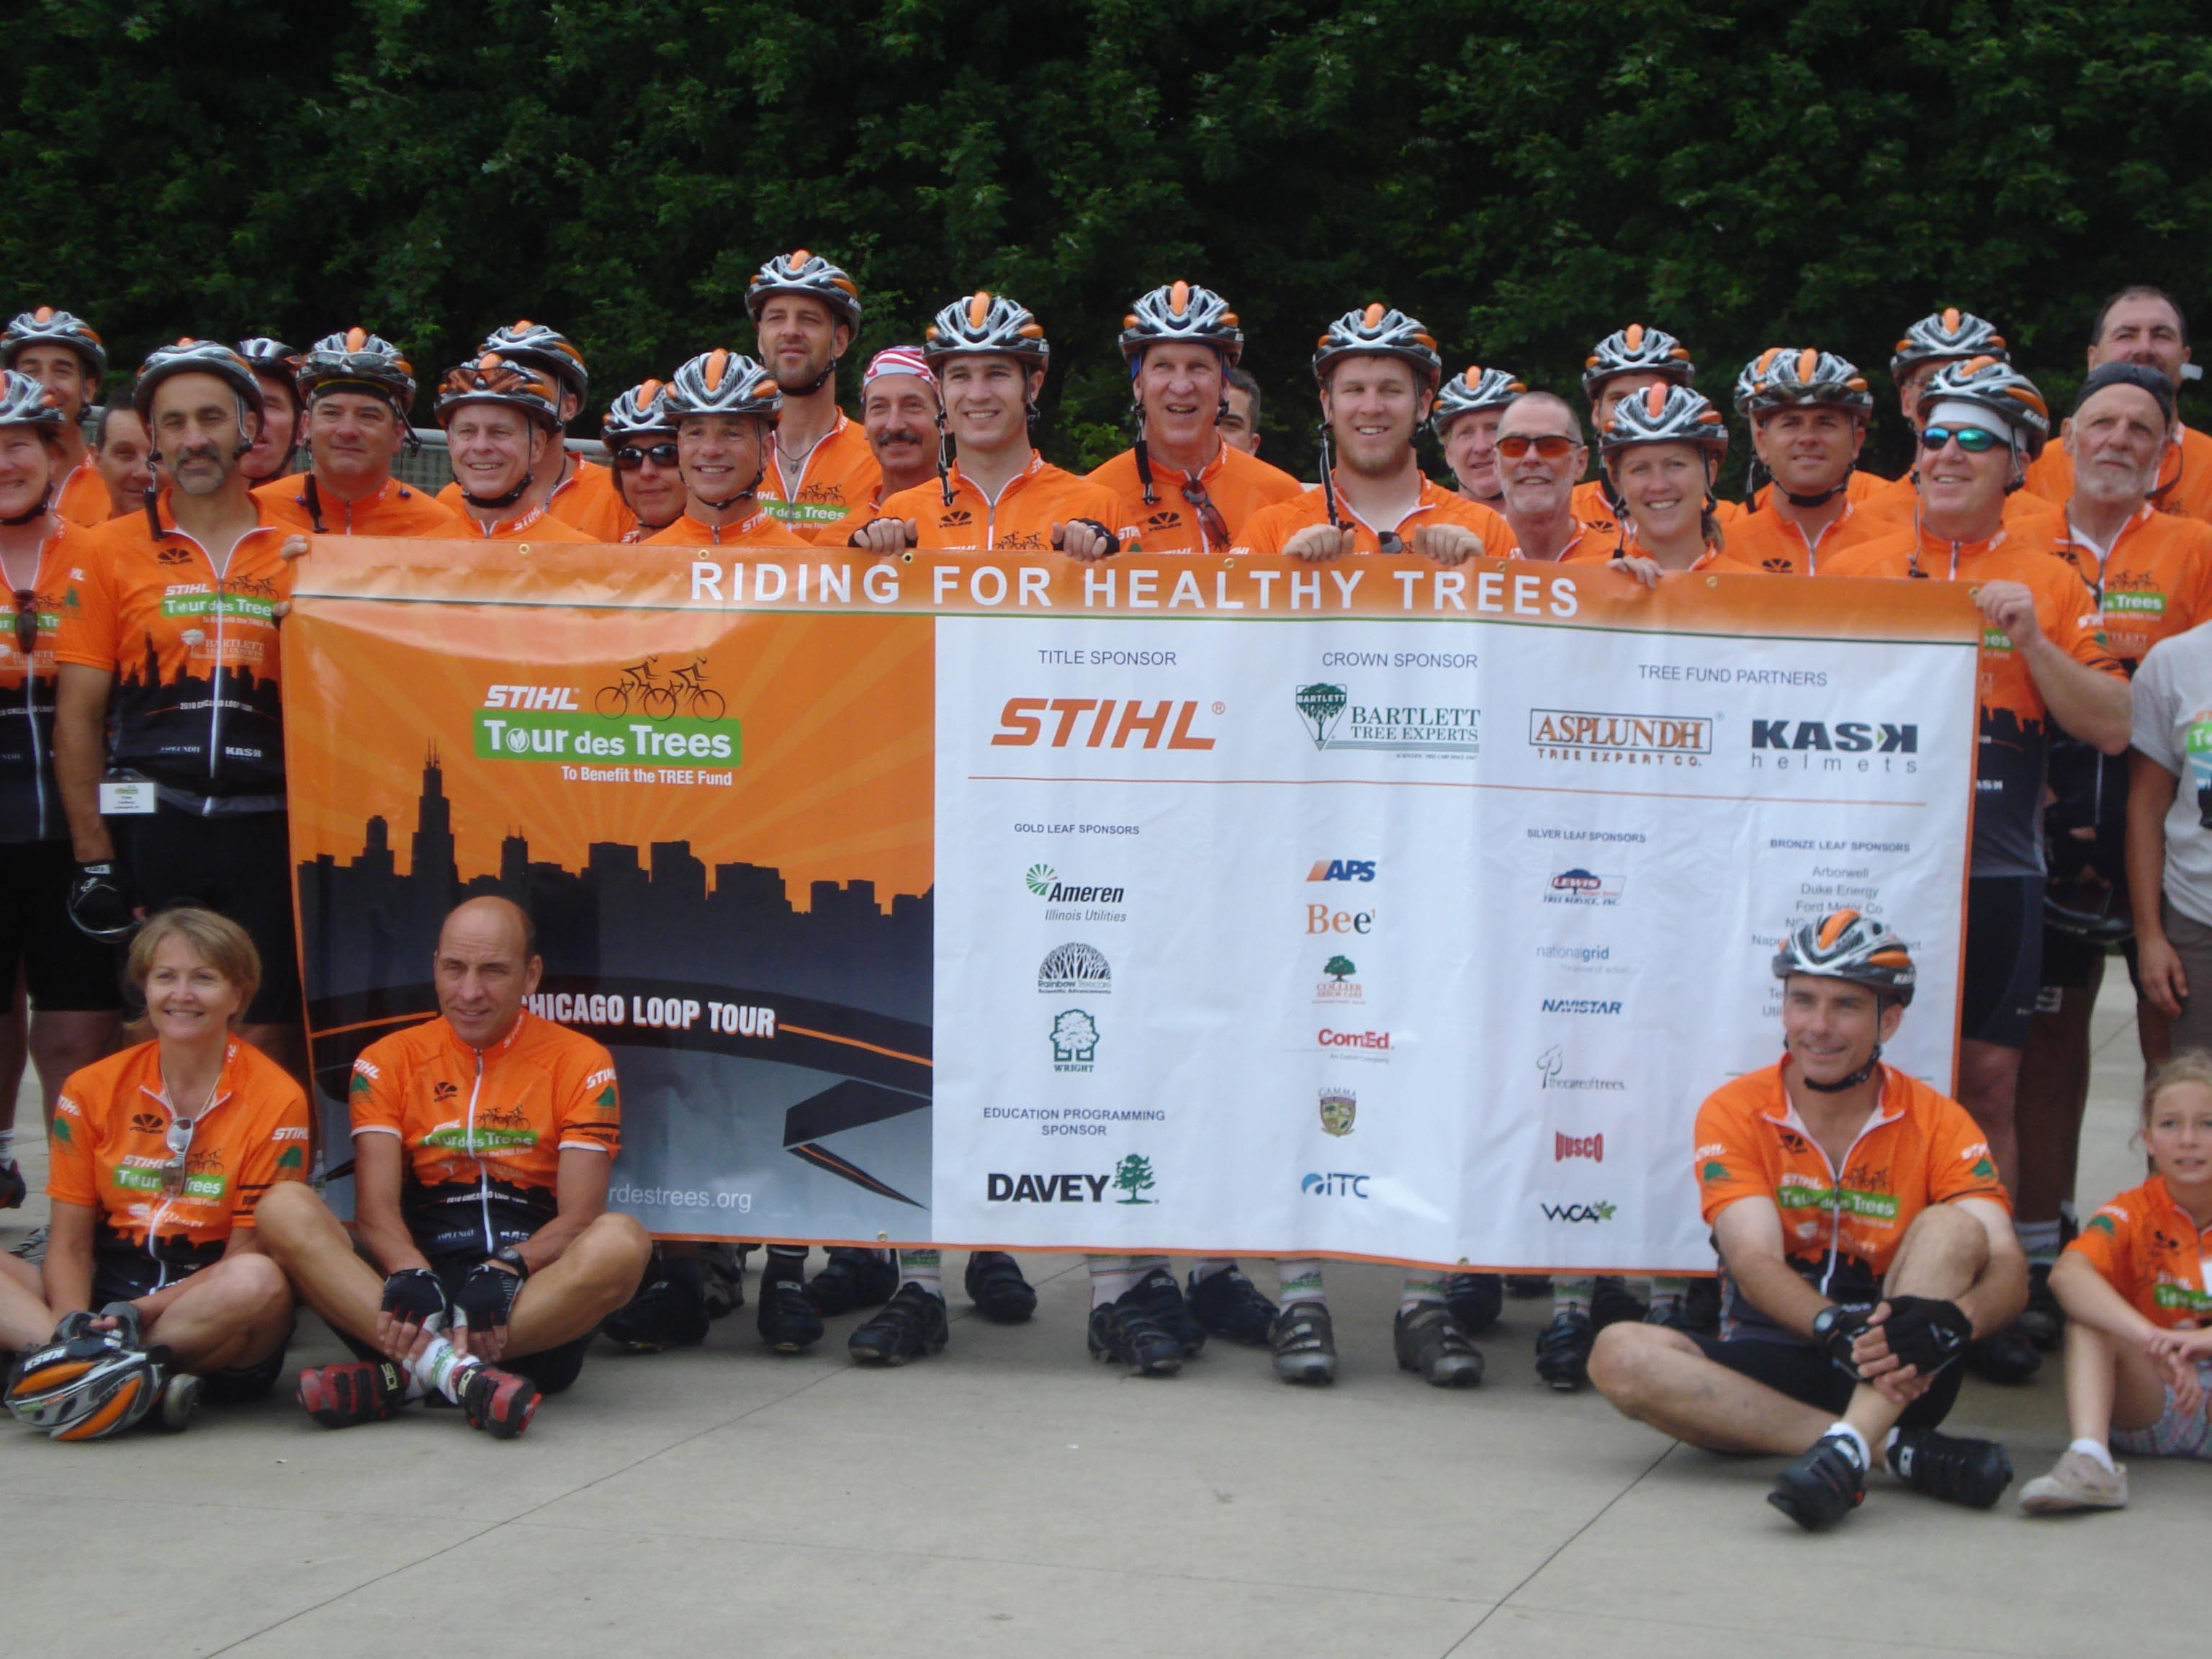 2010 STIHL Tour des Trees Riders in Chicago